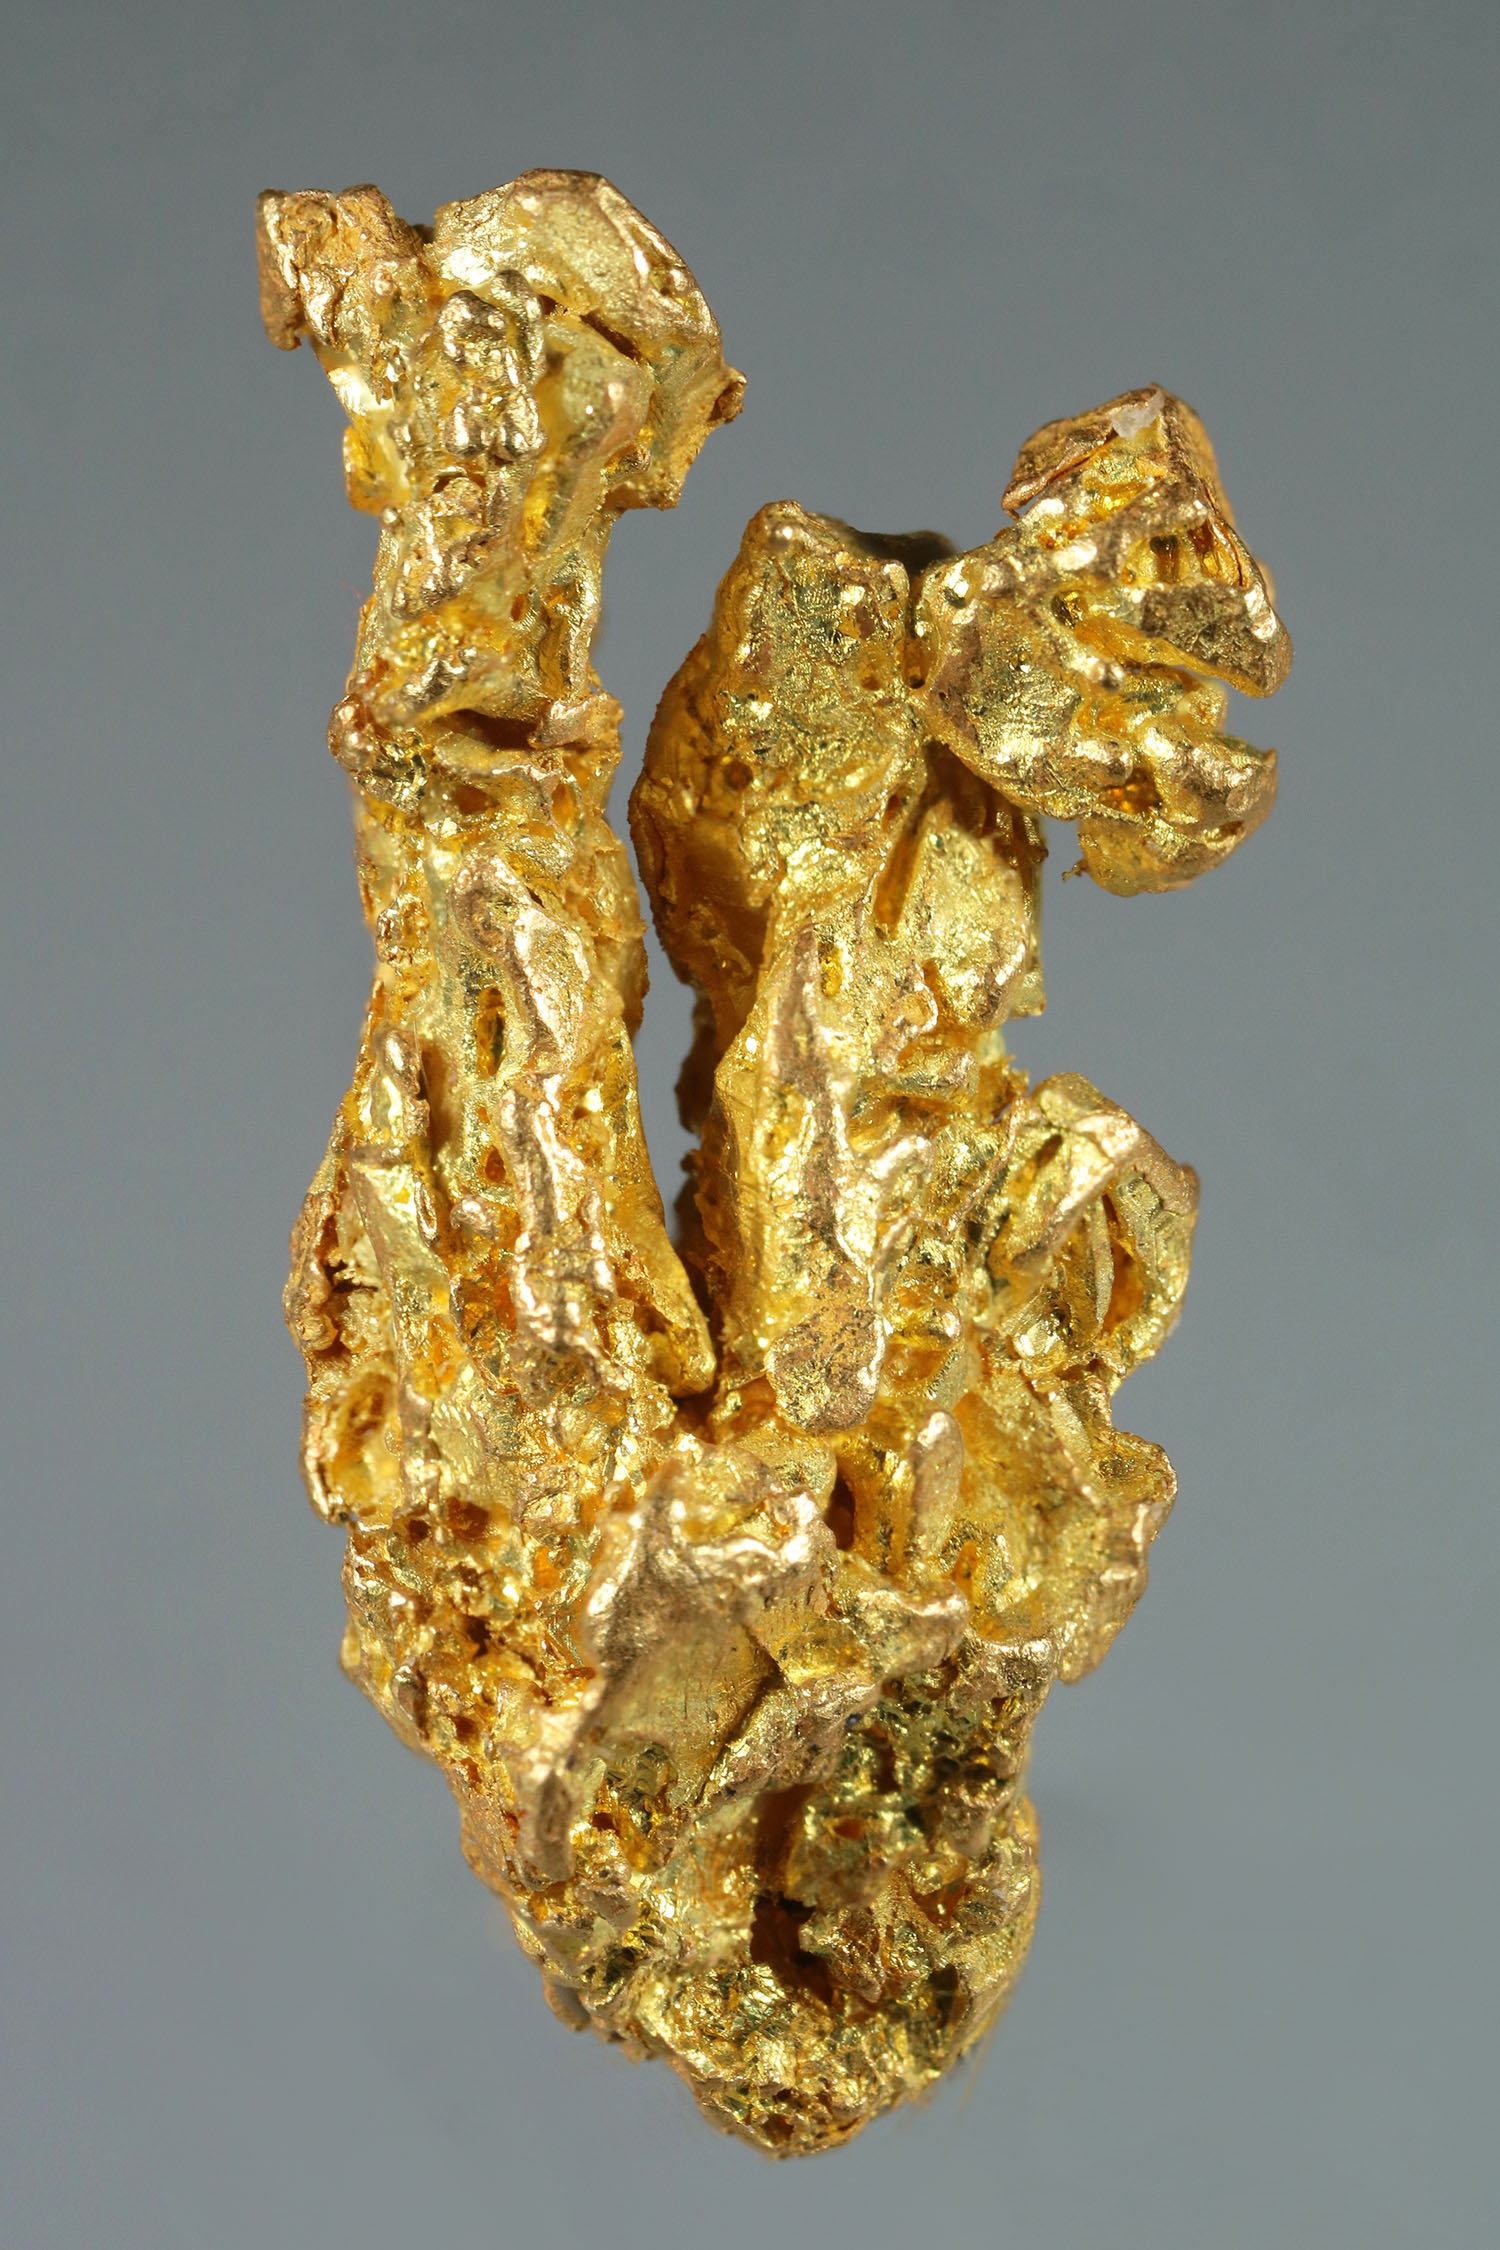 Rare Spinel Twin Yukon Gold Crystal